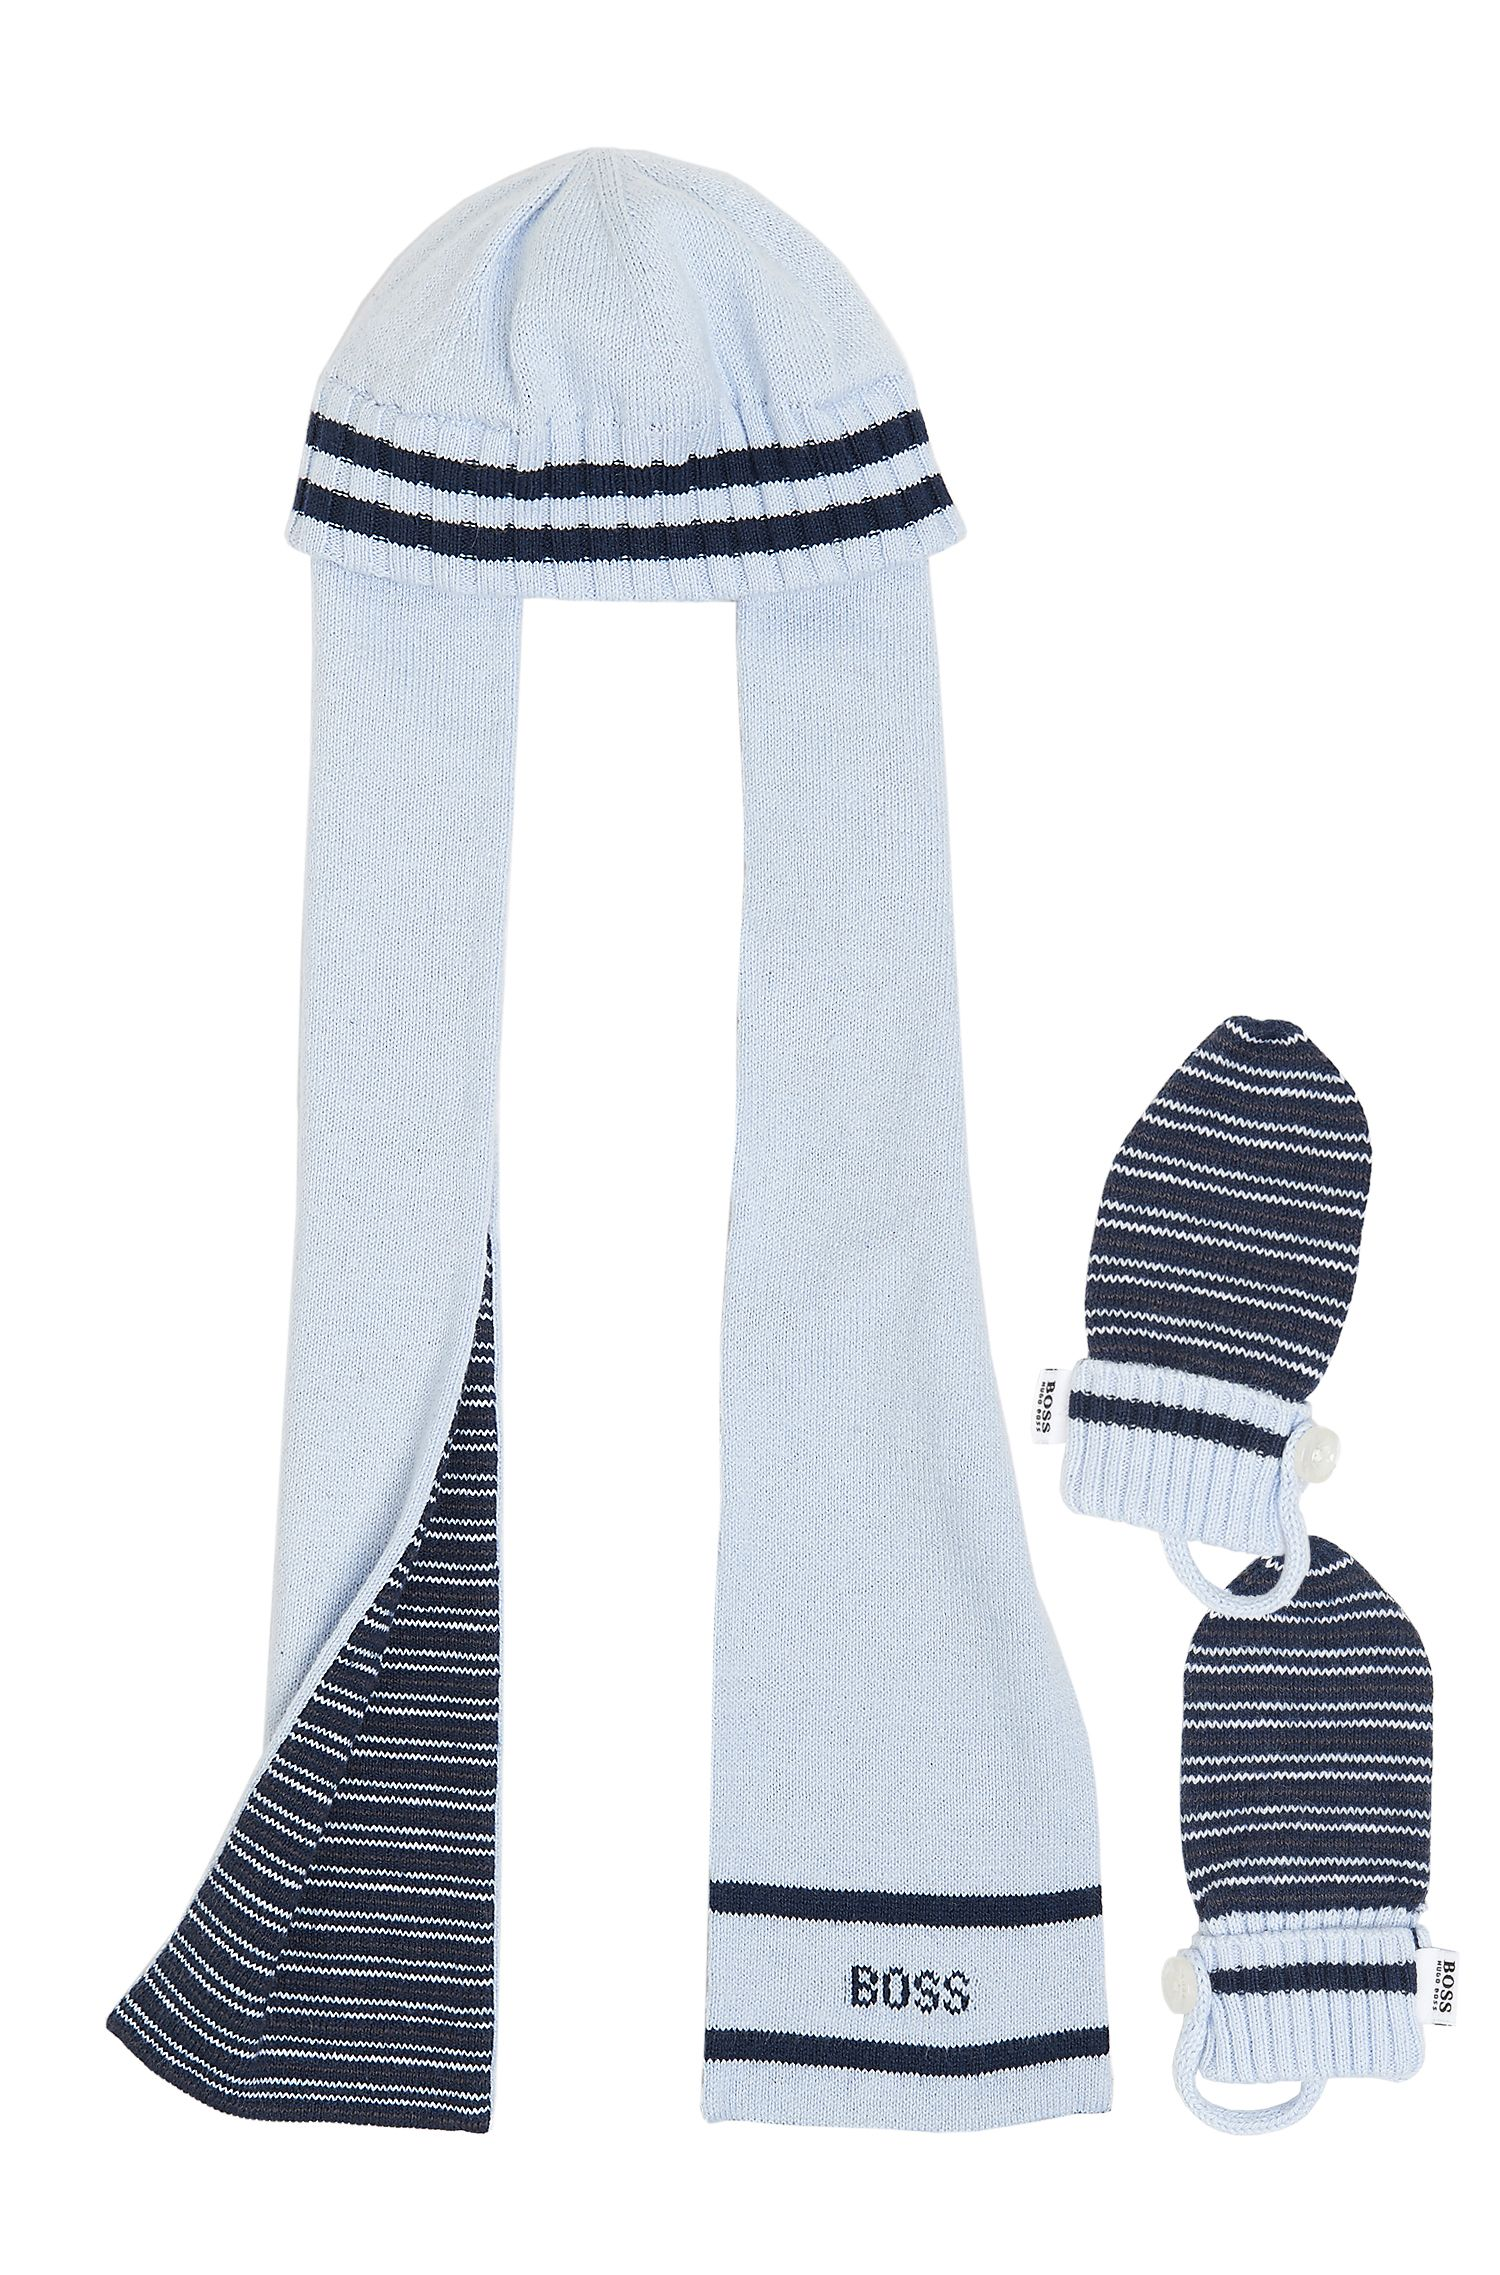 'J98088' | Infant Knit Cotton-Cashmere Hat-Scarf and Mittens Set